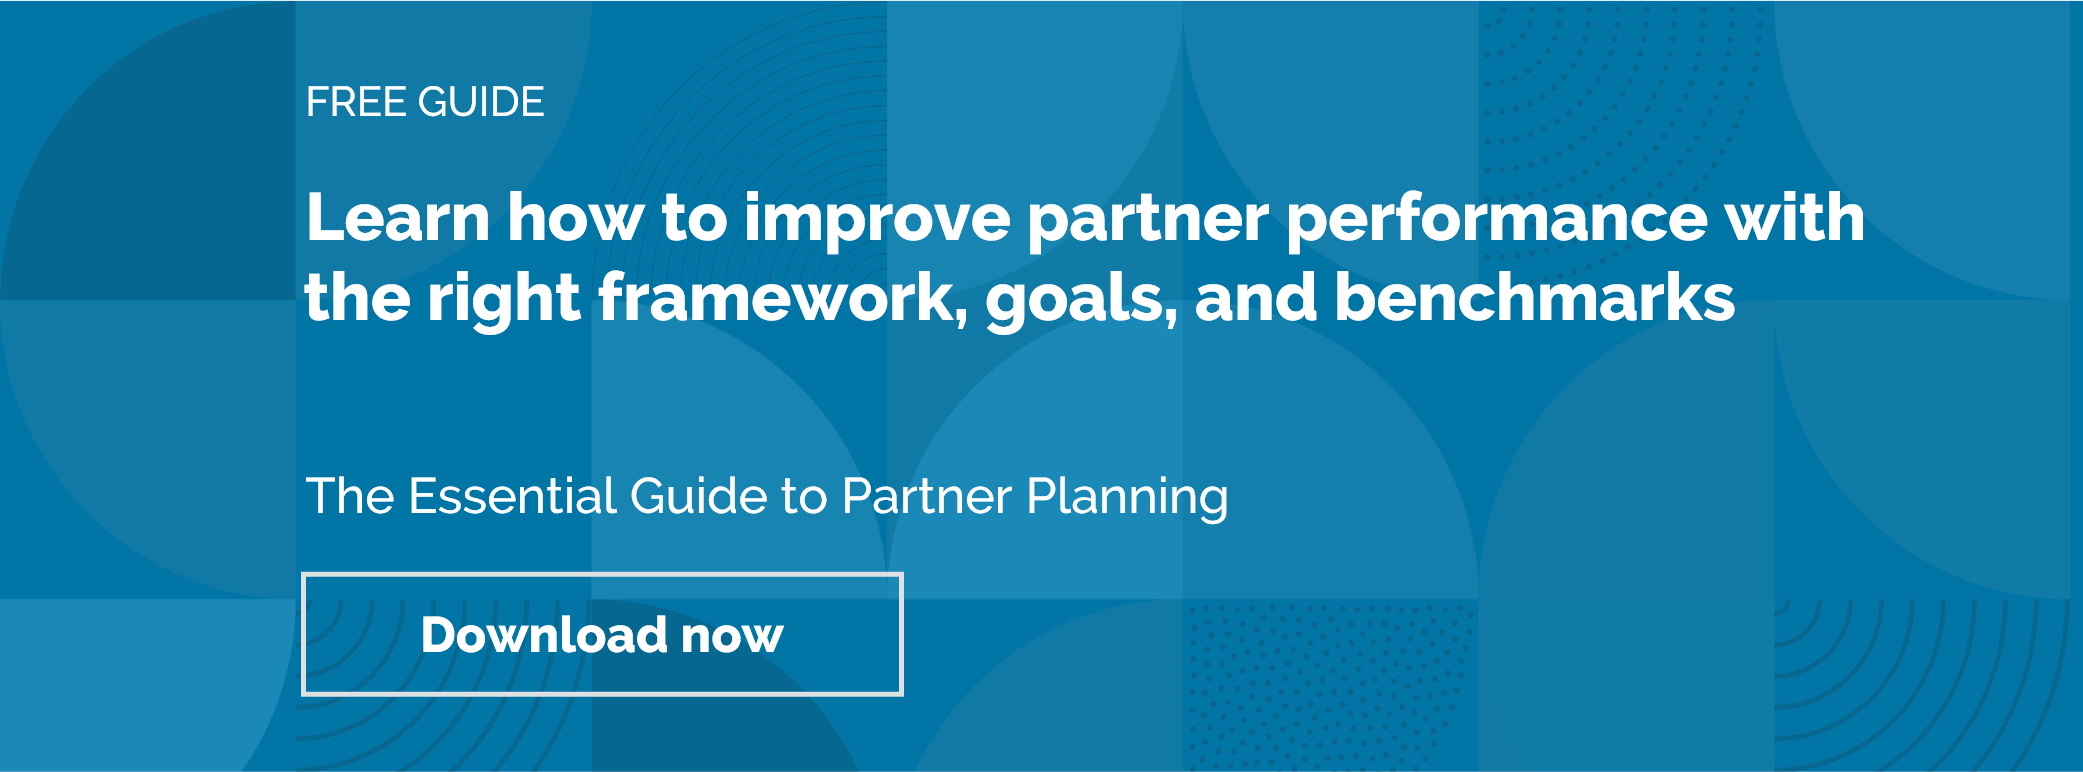 partner planning_image CTA